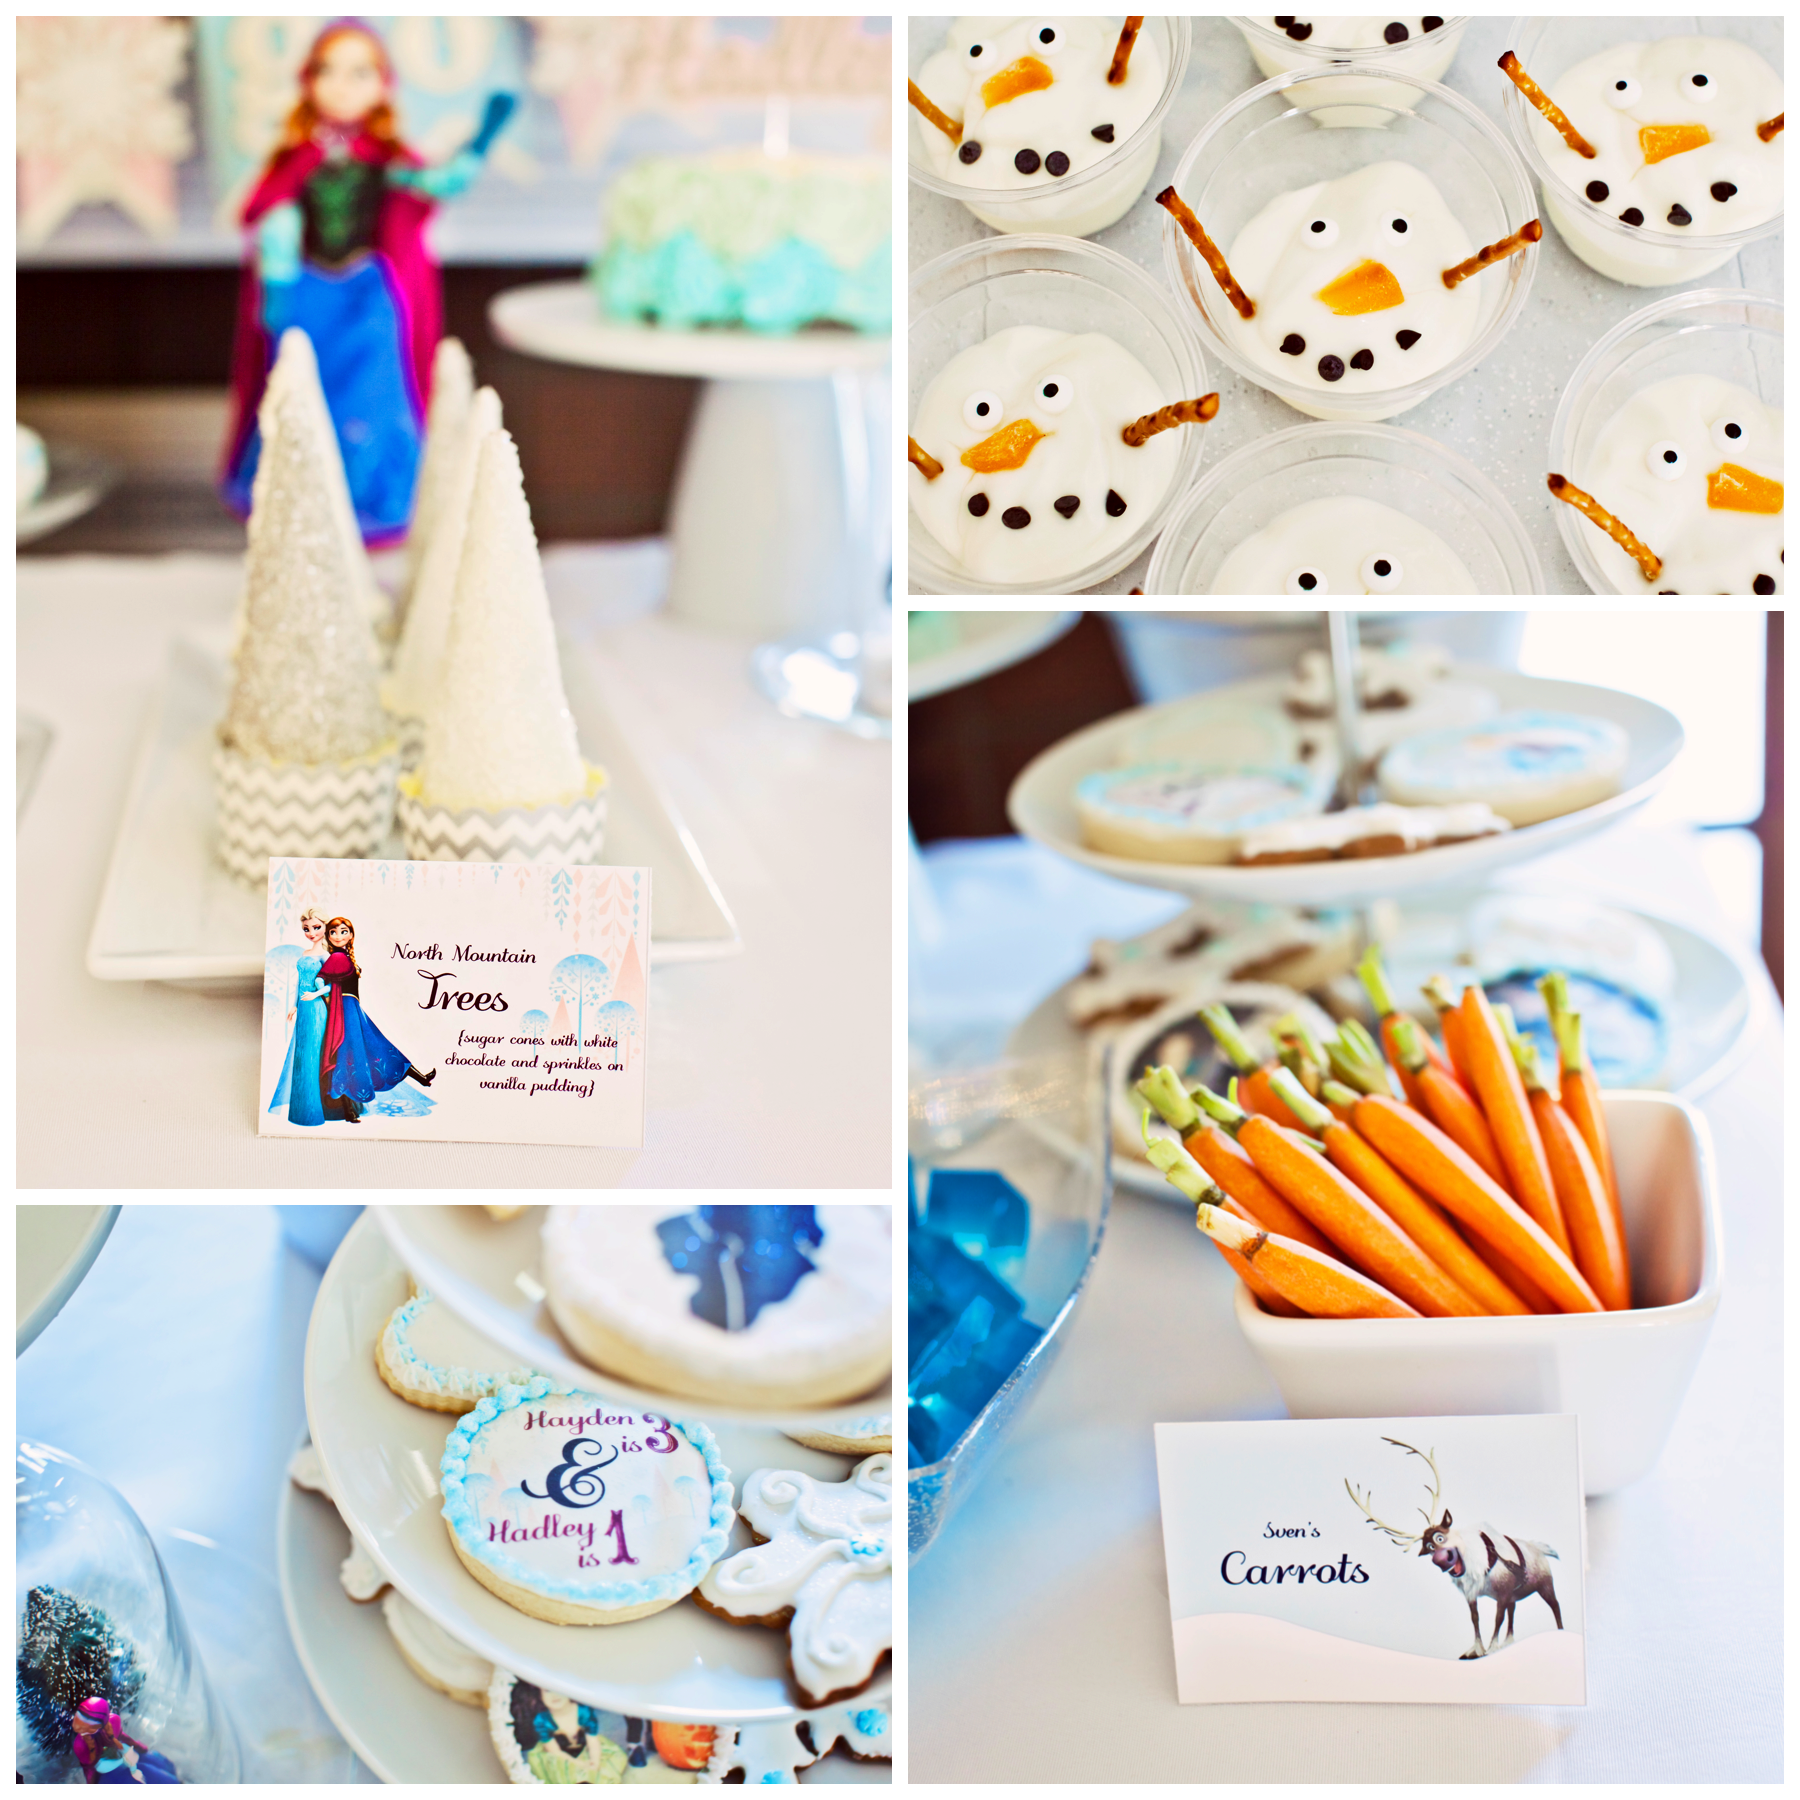 Olaf yogurts, Sven's carrots, decorated sugar cookies